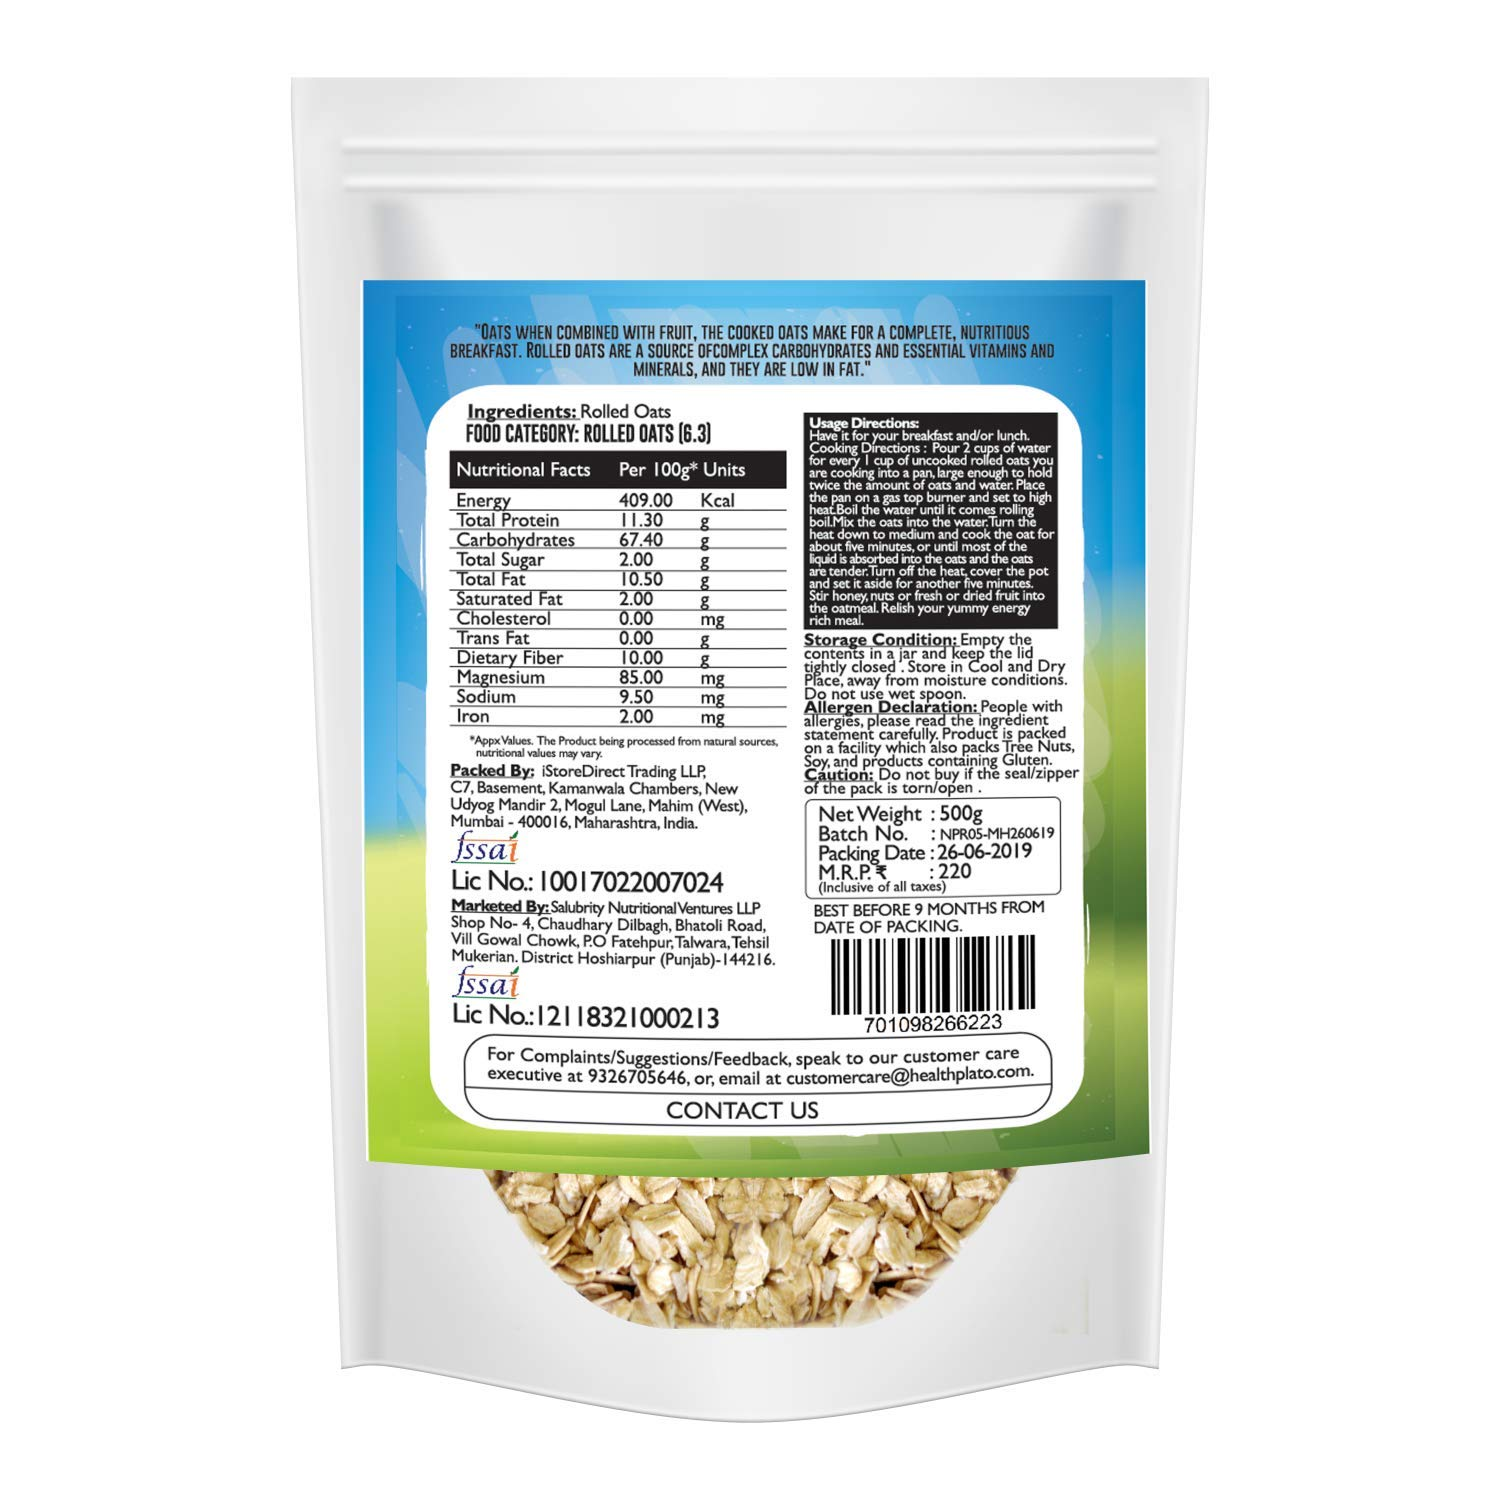 Nutriplato-enriching lives Rolled Oats, 500 g: Amazon in: Grocery